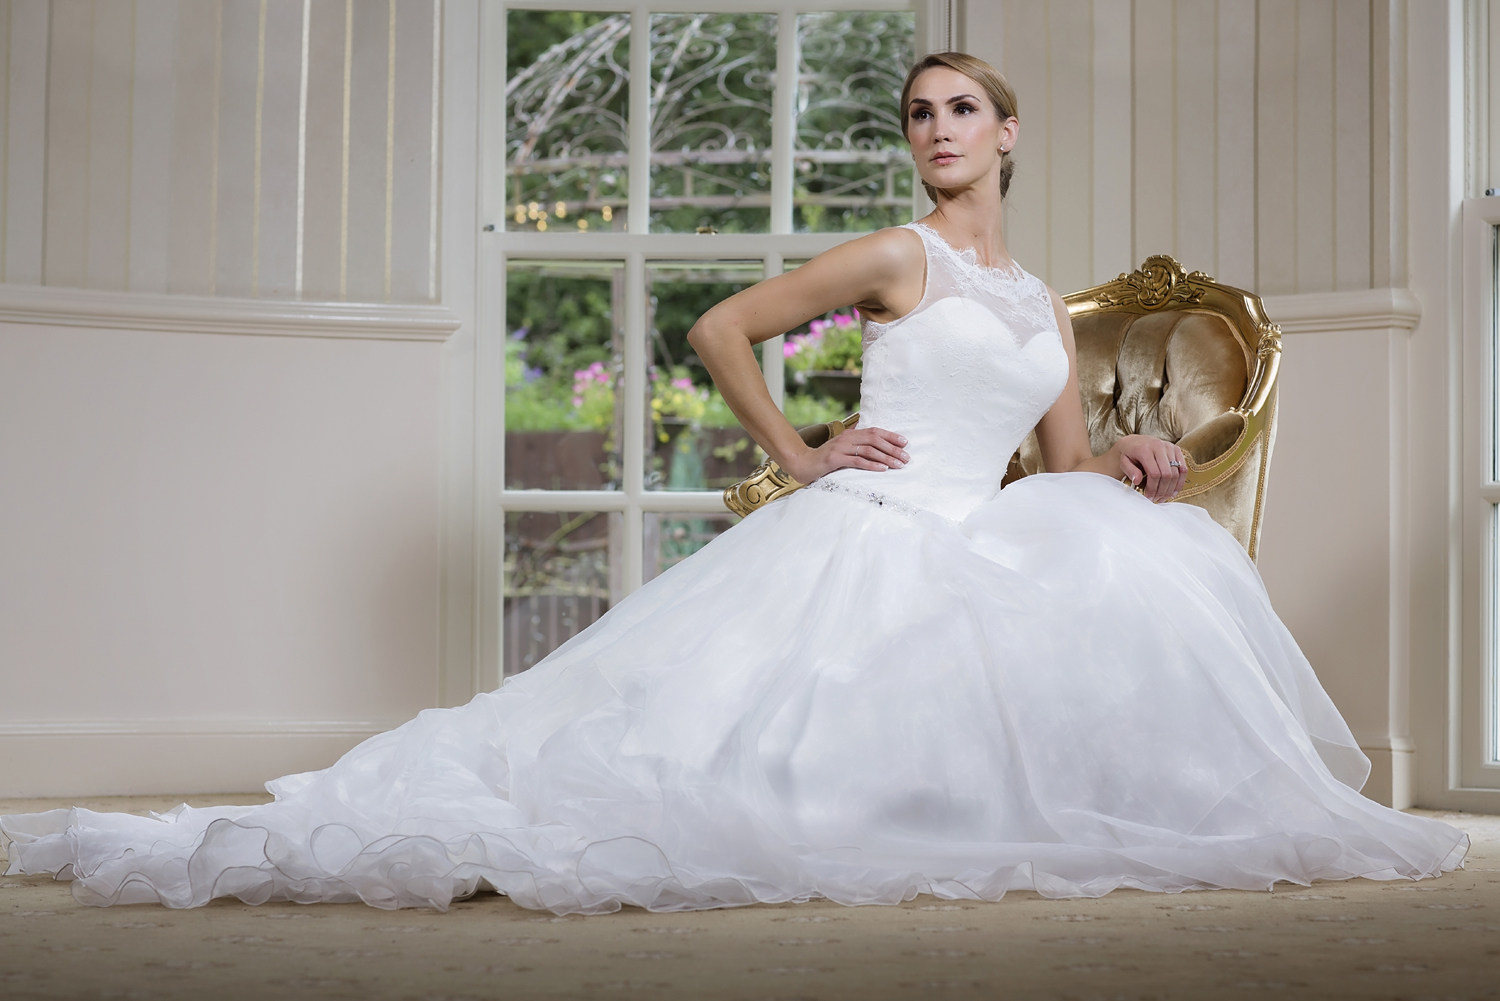 Wedding Dresses In Banbury - Cheap Wedding Dresses